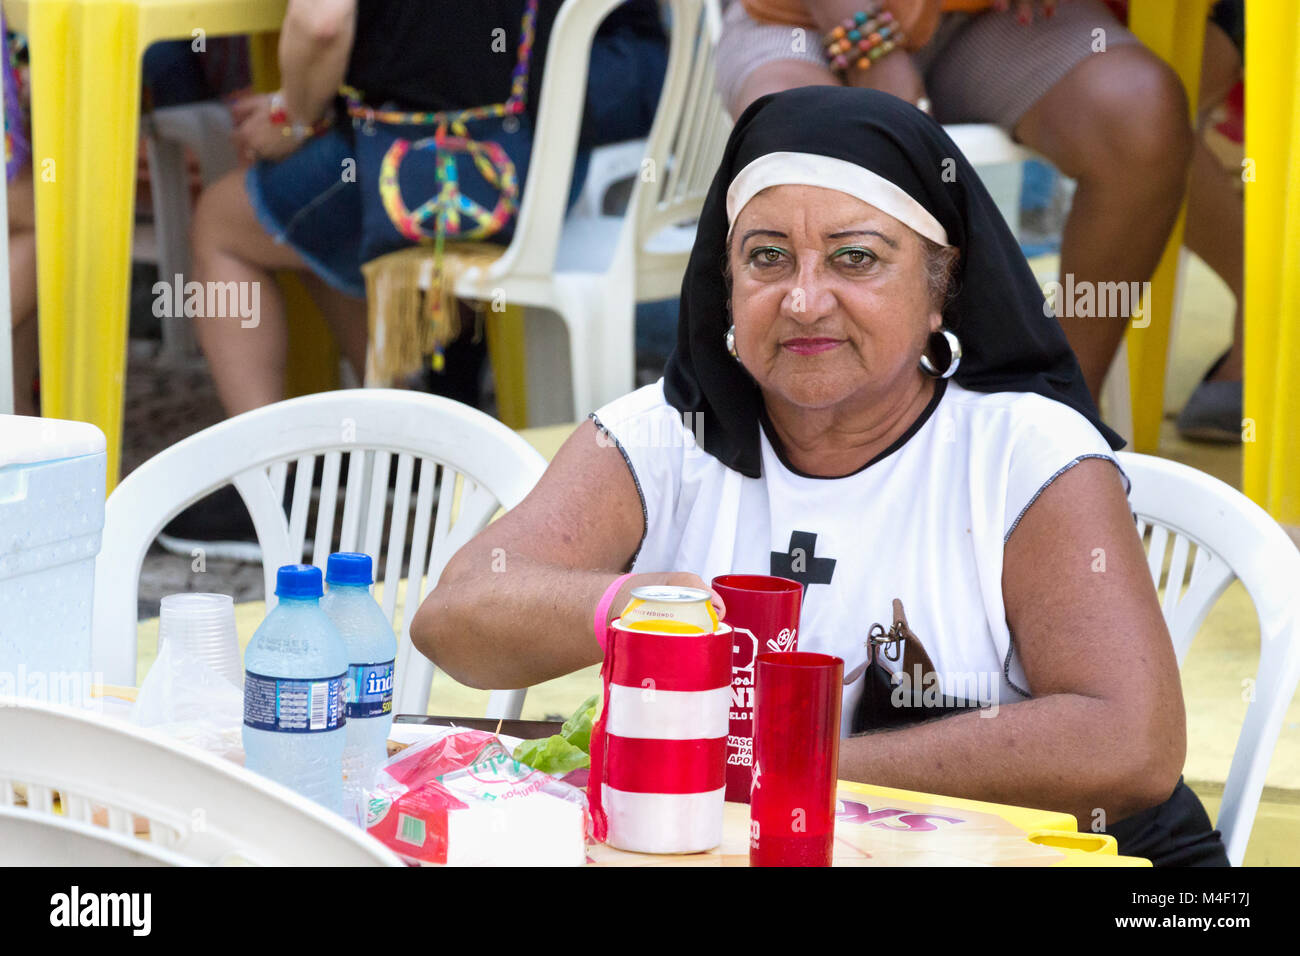 Recife, Brazil - February 9th, 2018: Portrait of a woman with a nun costume at the Carnival in Recife. - Stock Image